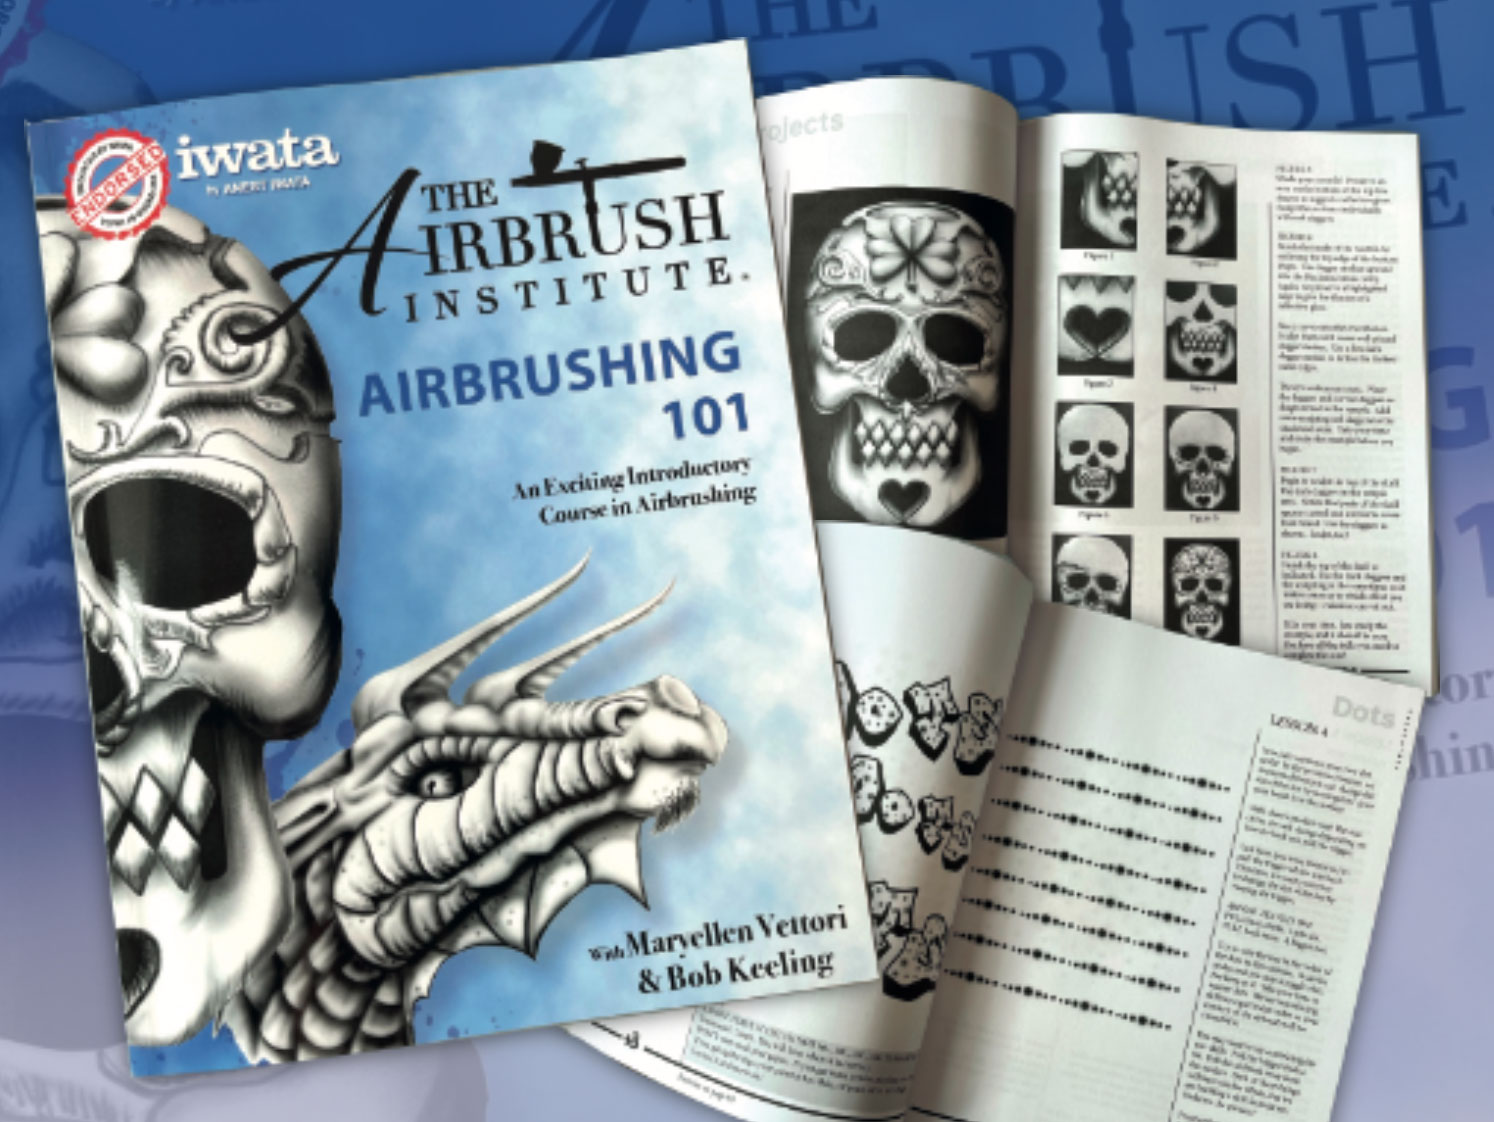 Airbrushing 101: Comprehensive airbrush tutorial book for beginners